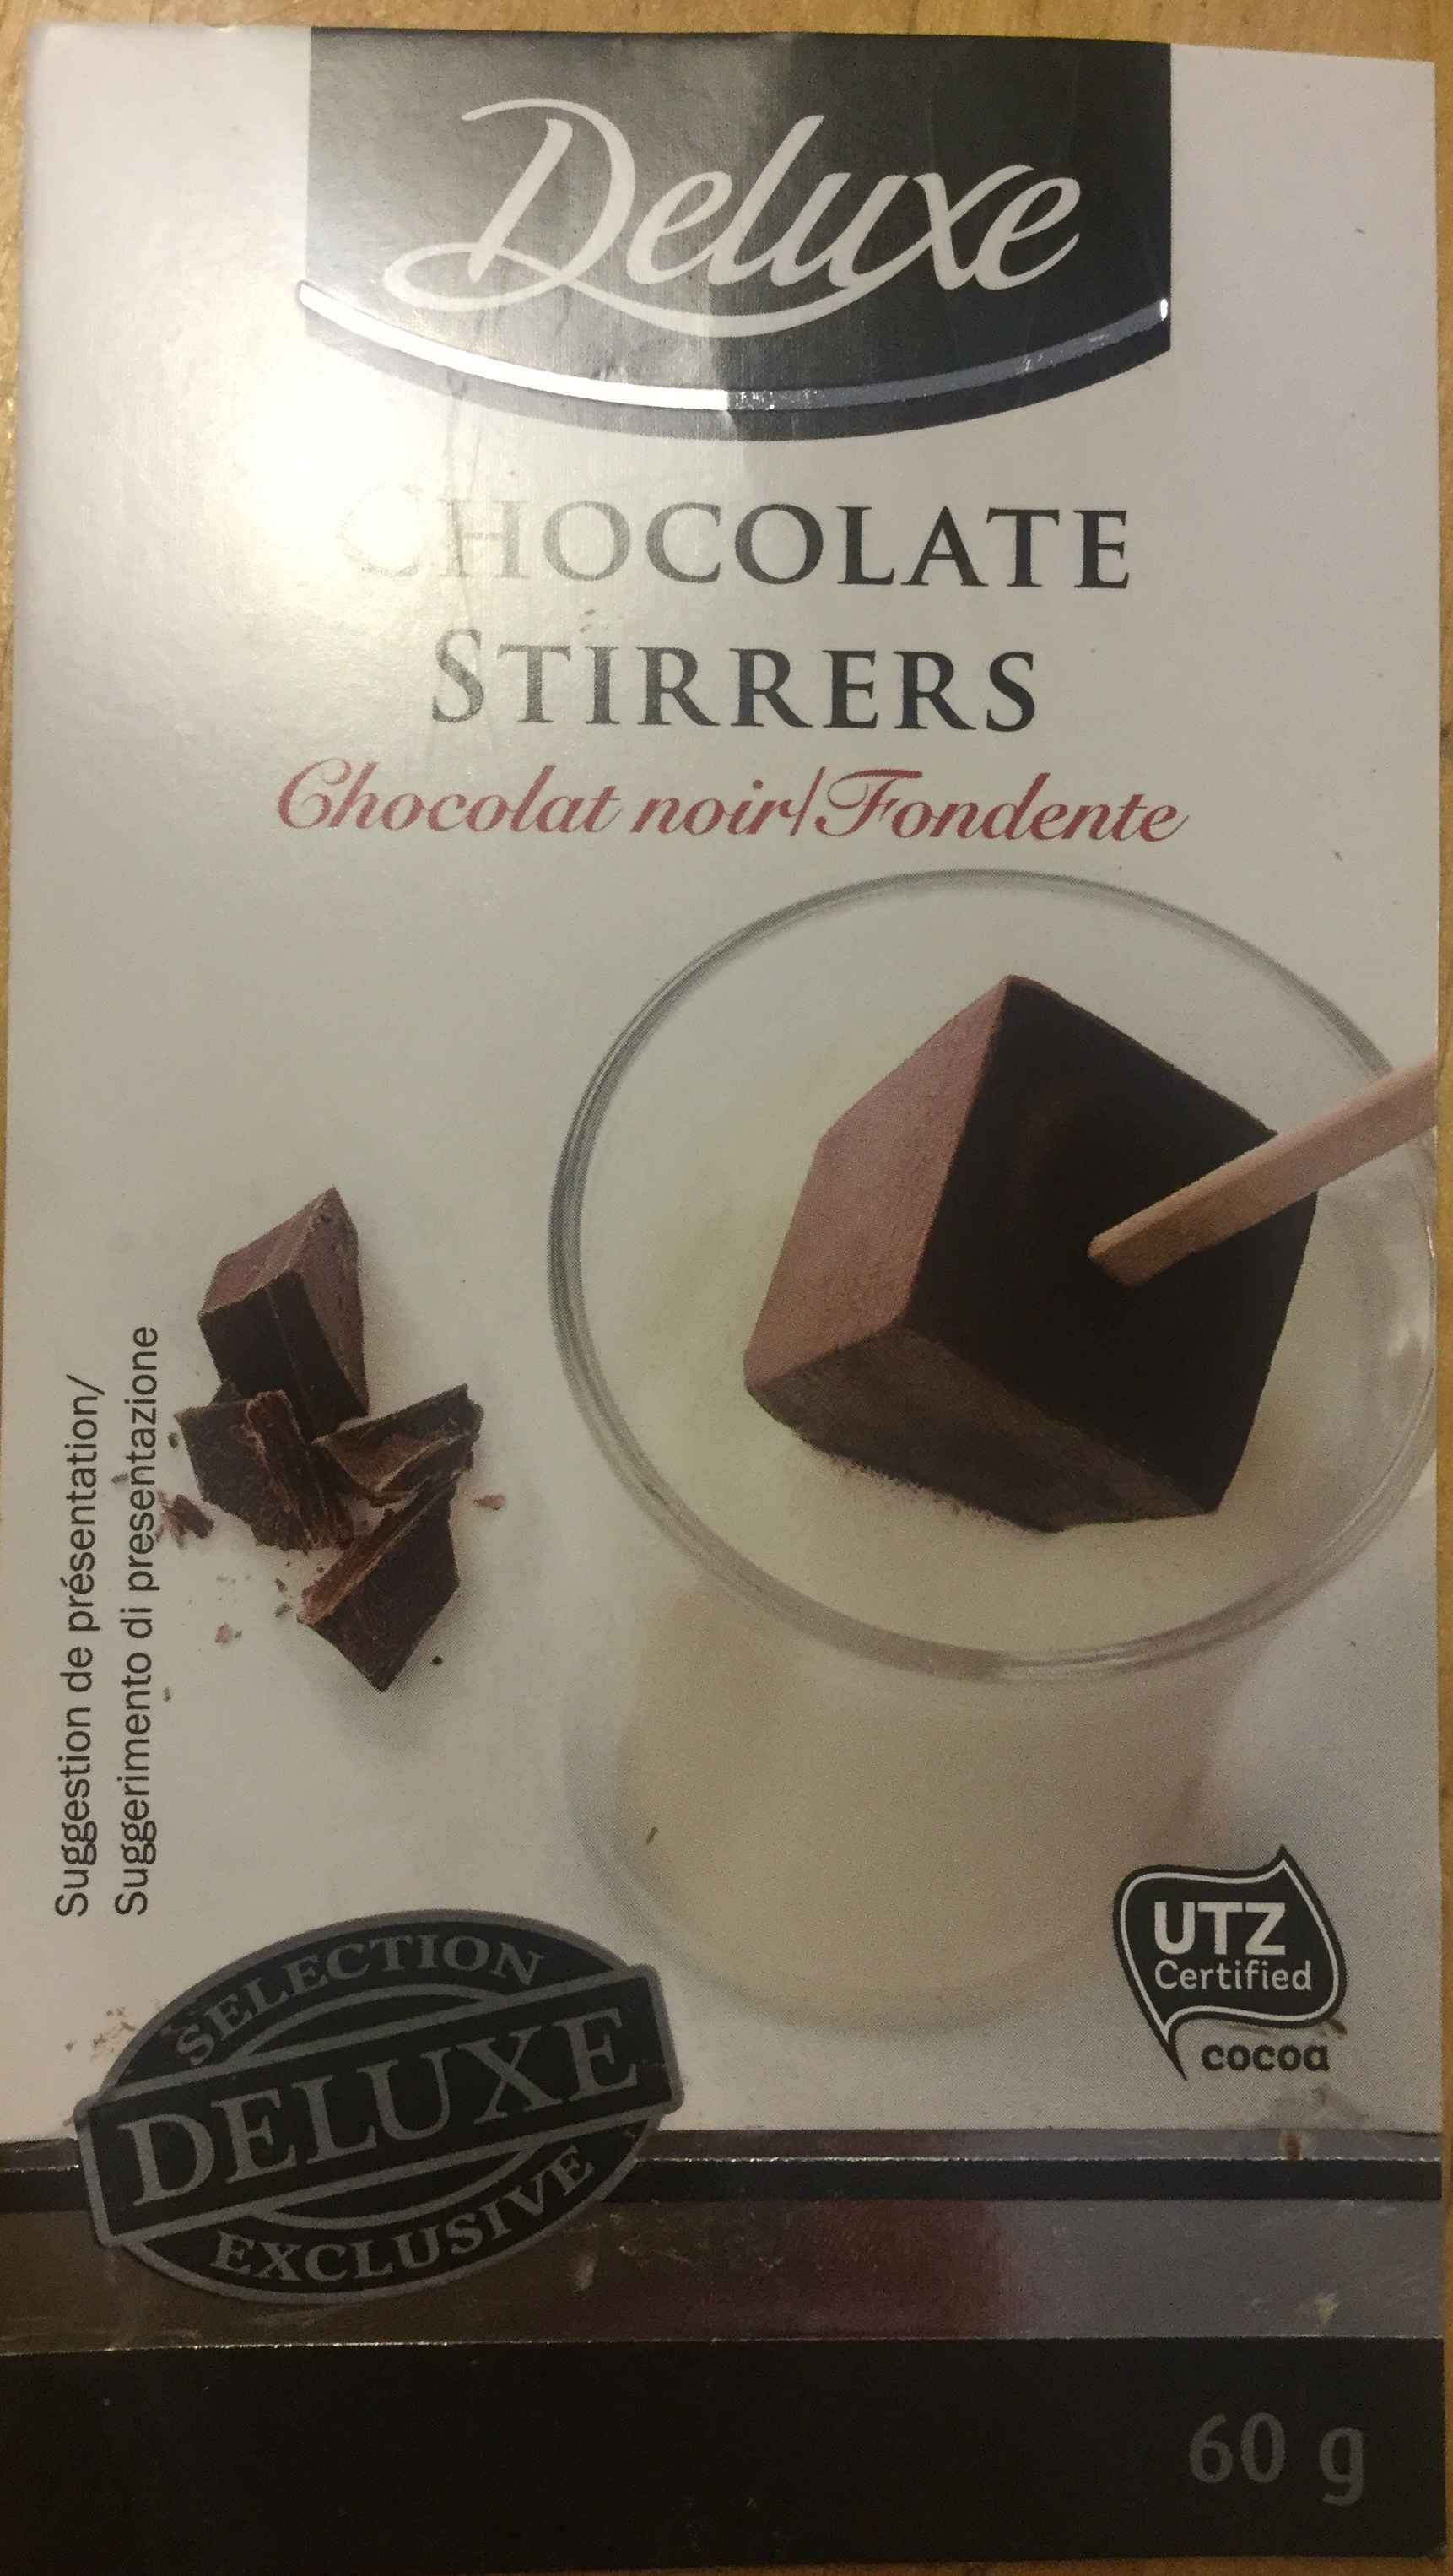 Chocolate stirrers - Product